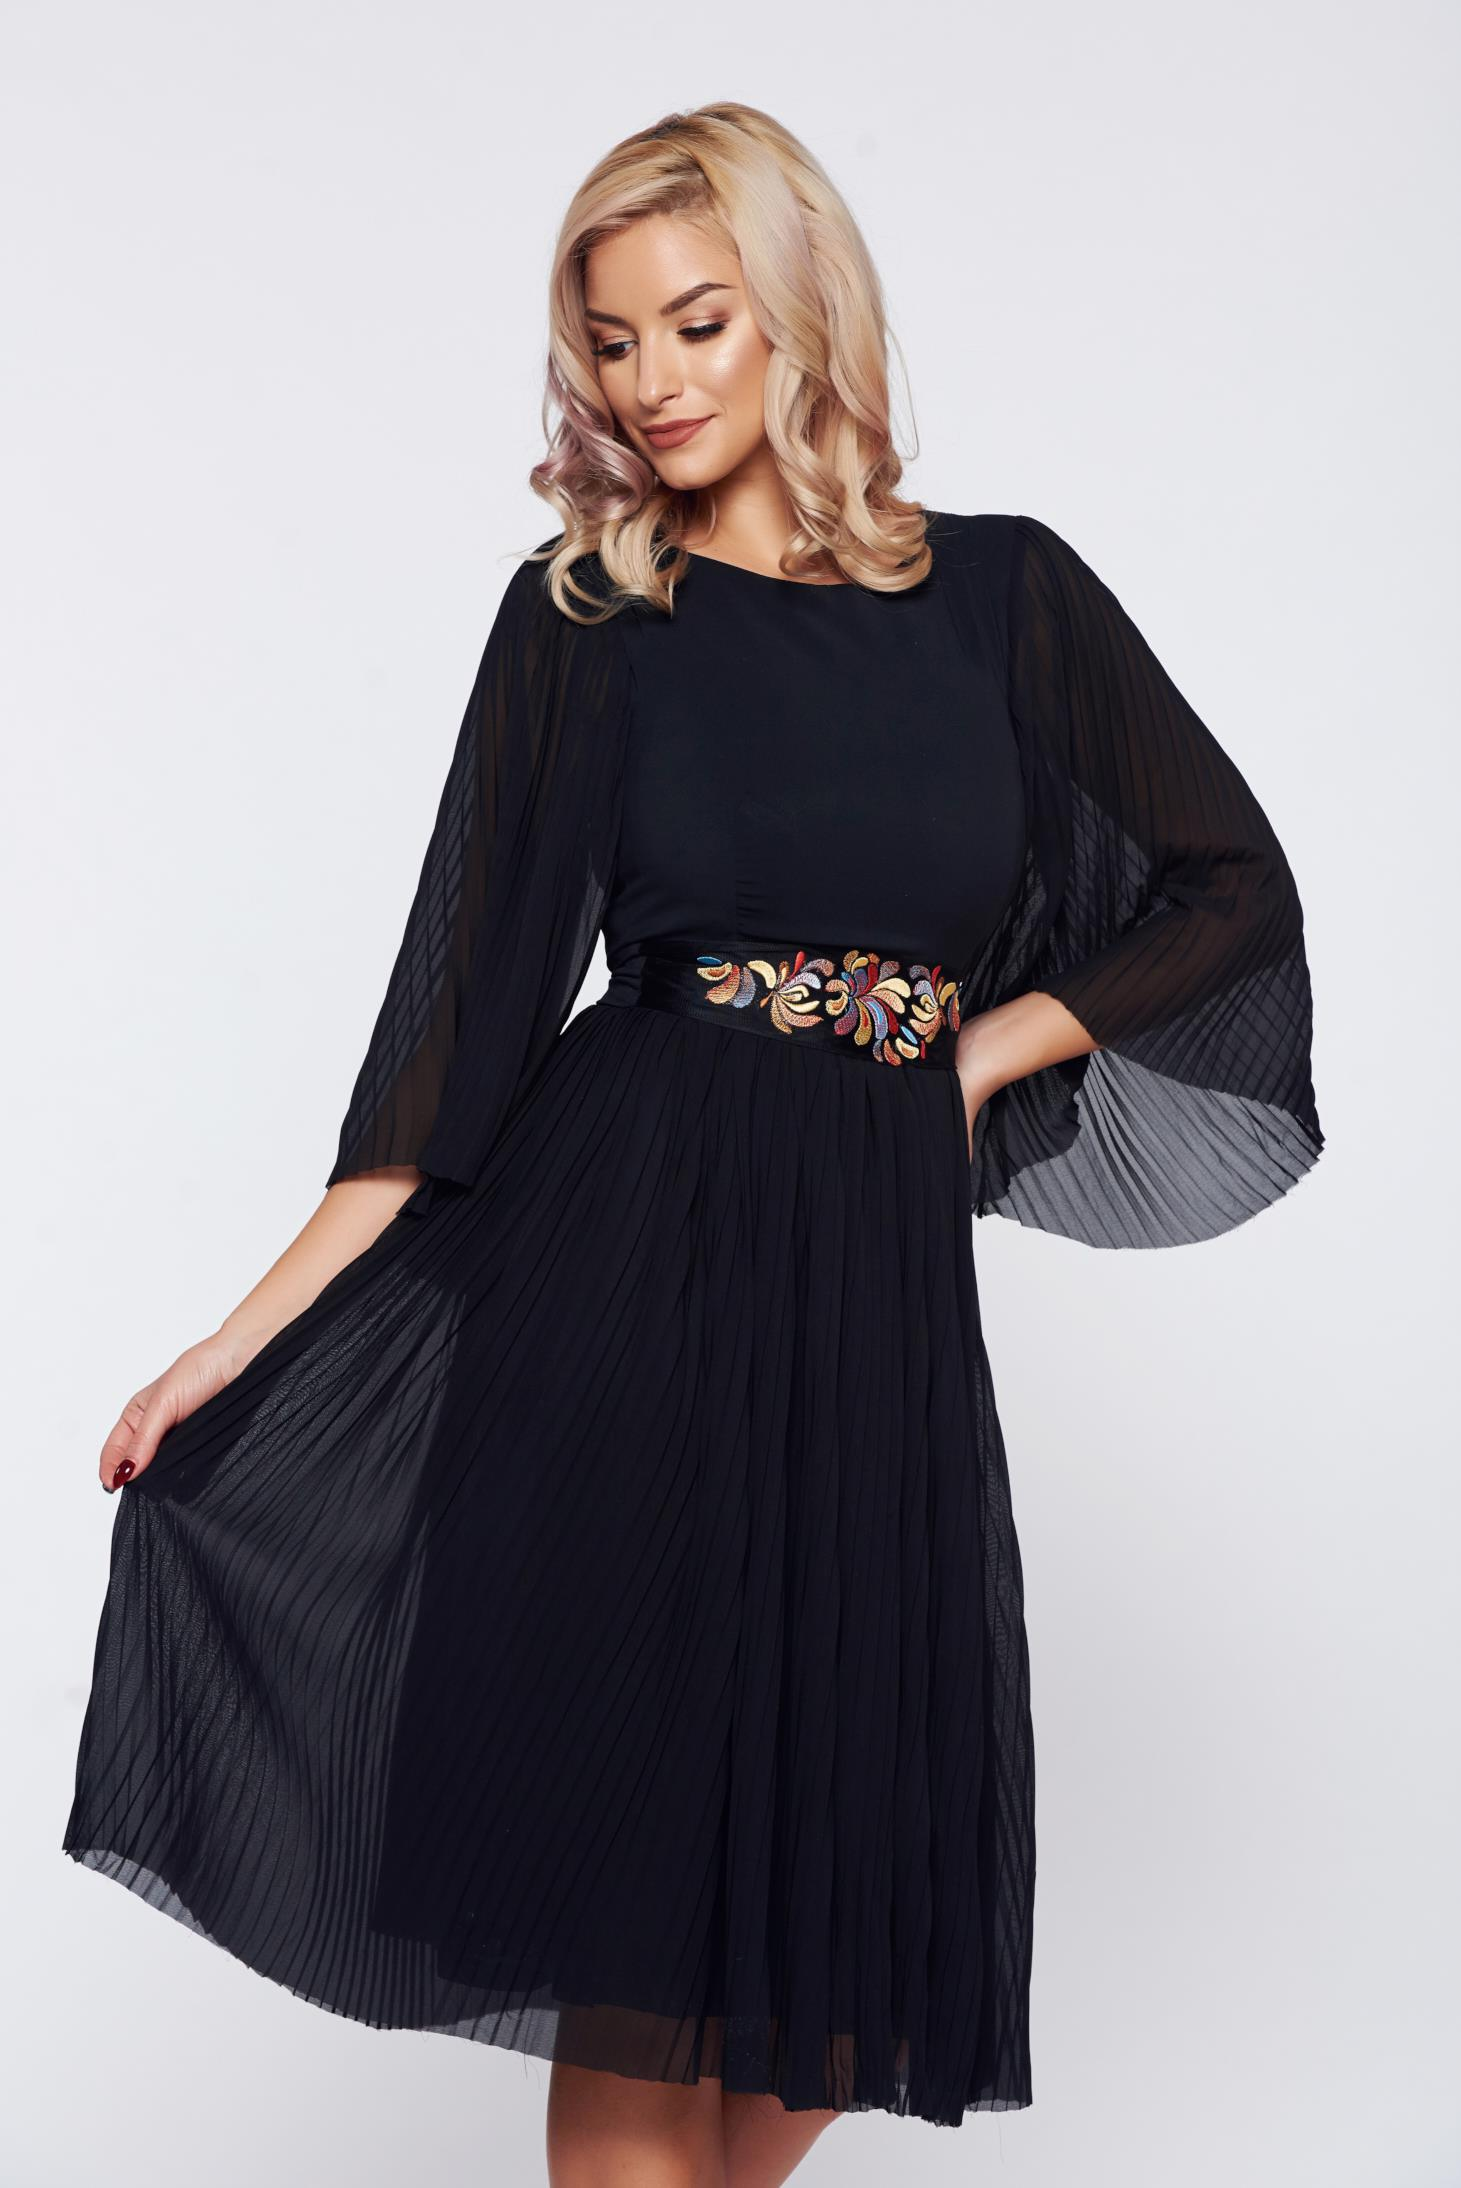 StarShinerS black occasional embroidered dress from veil fabric folded up accessorized with tied waistband